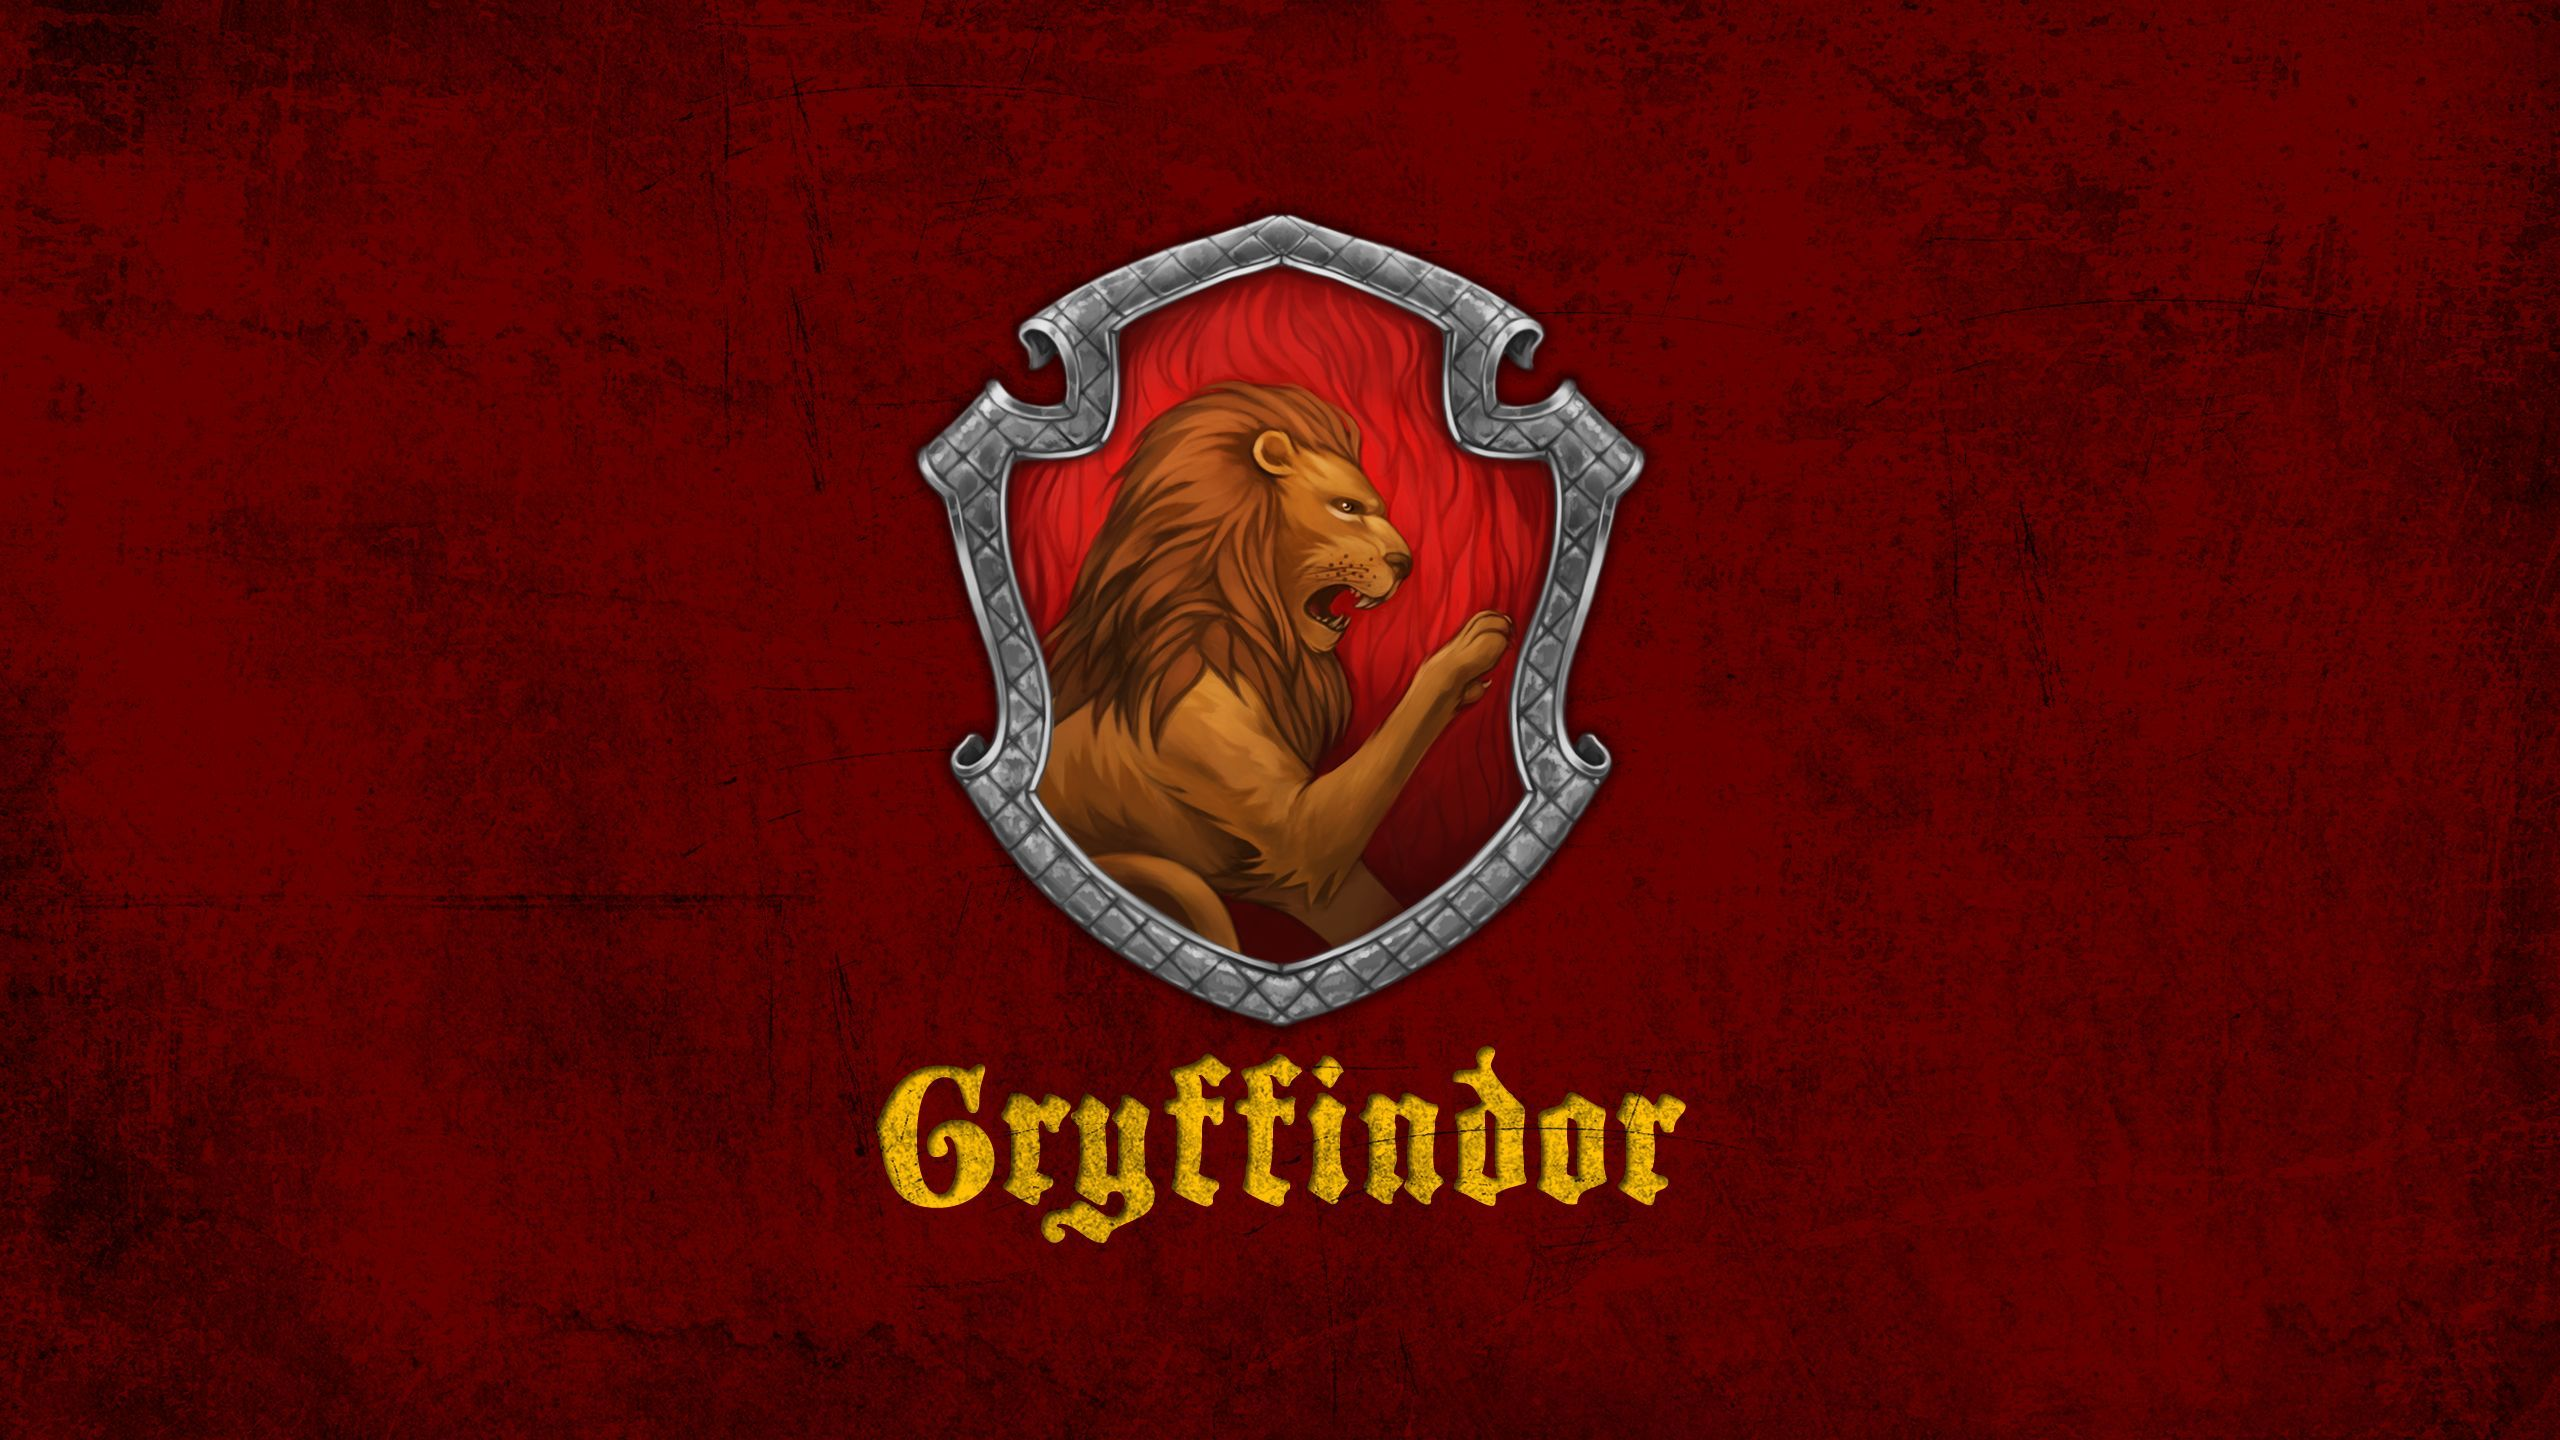 2560x1440 6 Gryffindor HD Wallpapers | Background Images - Wallpaper Abyss